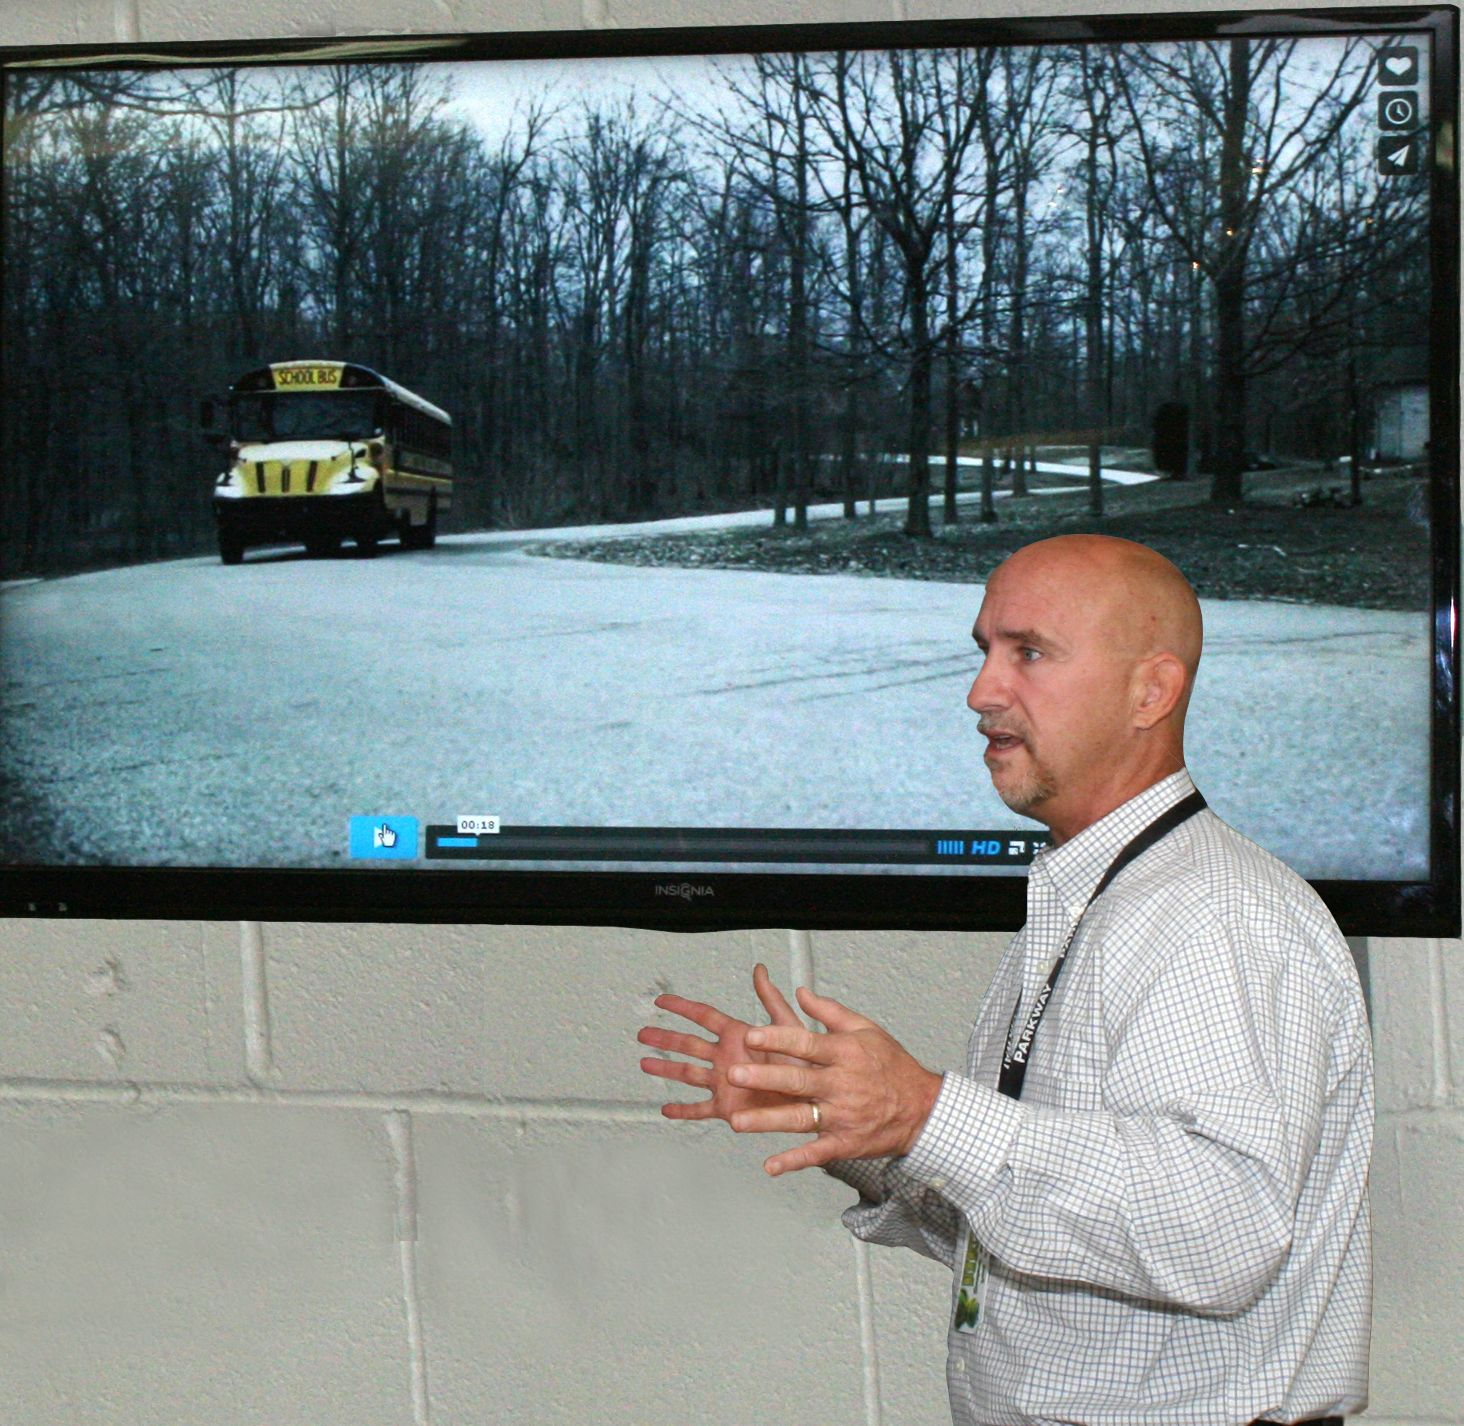 Missouri district bus drivers train on dealing with active shooters